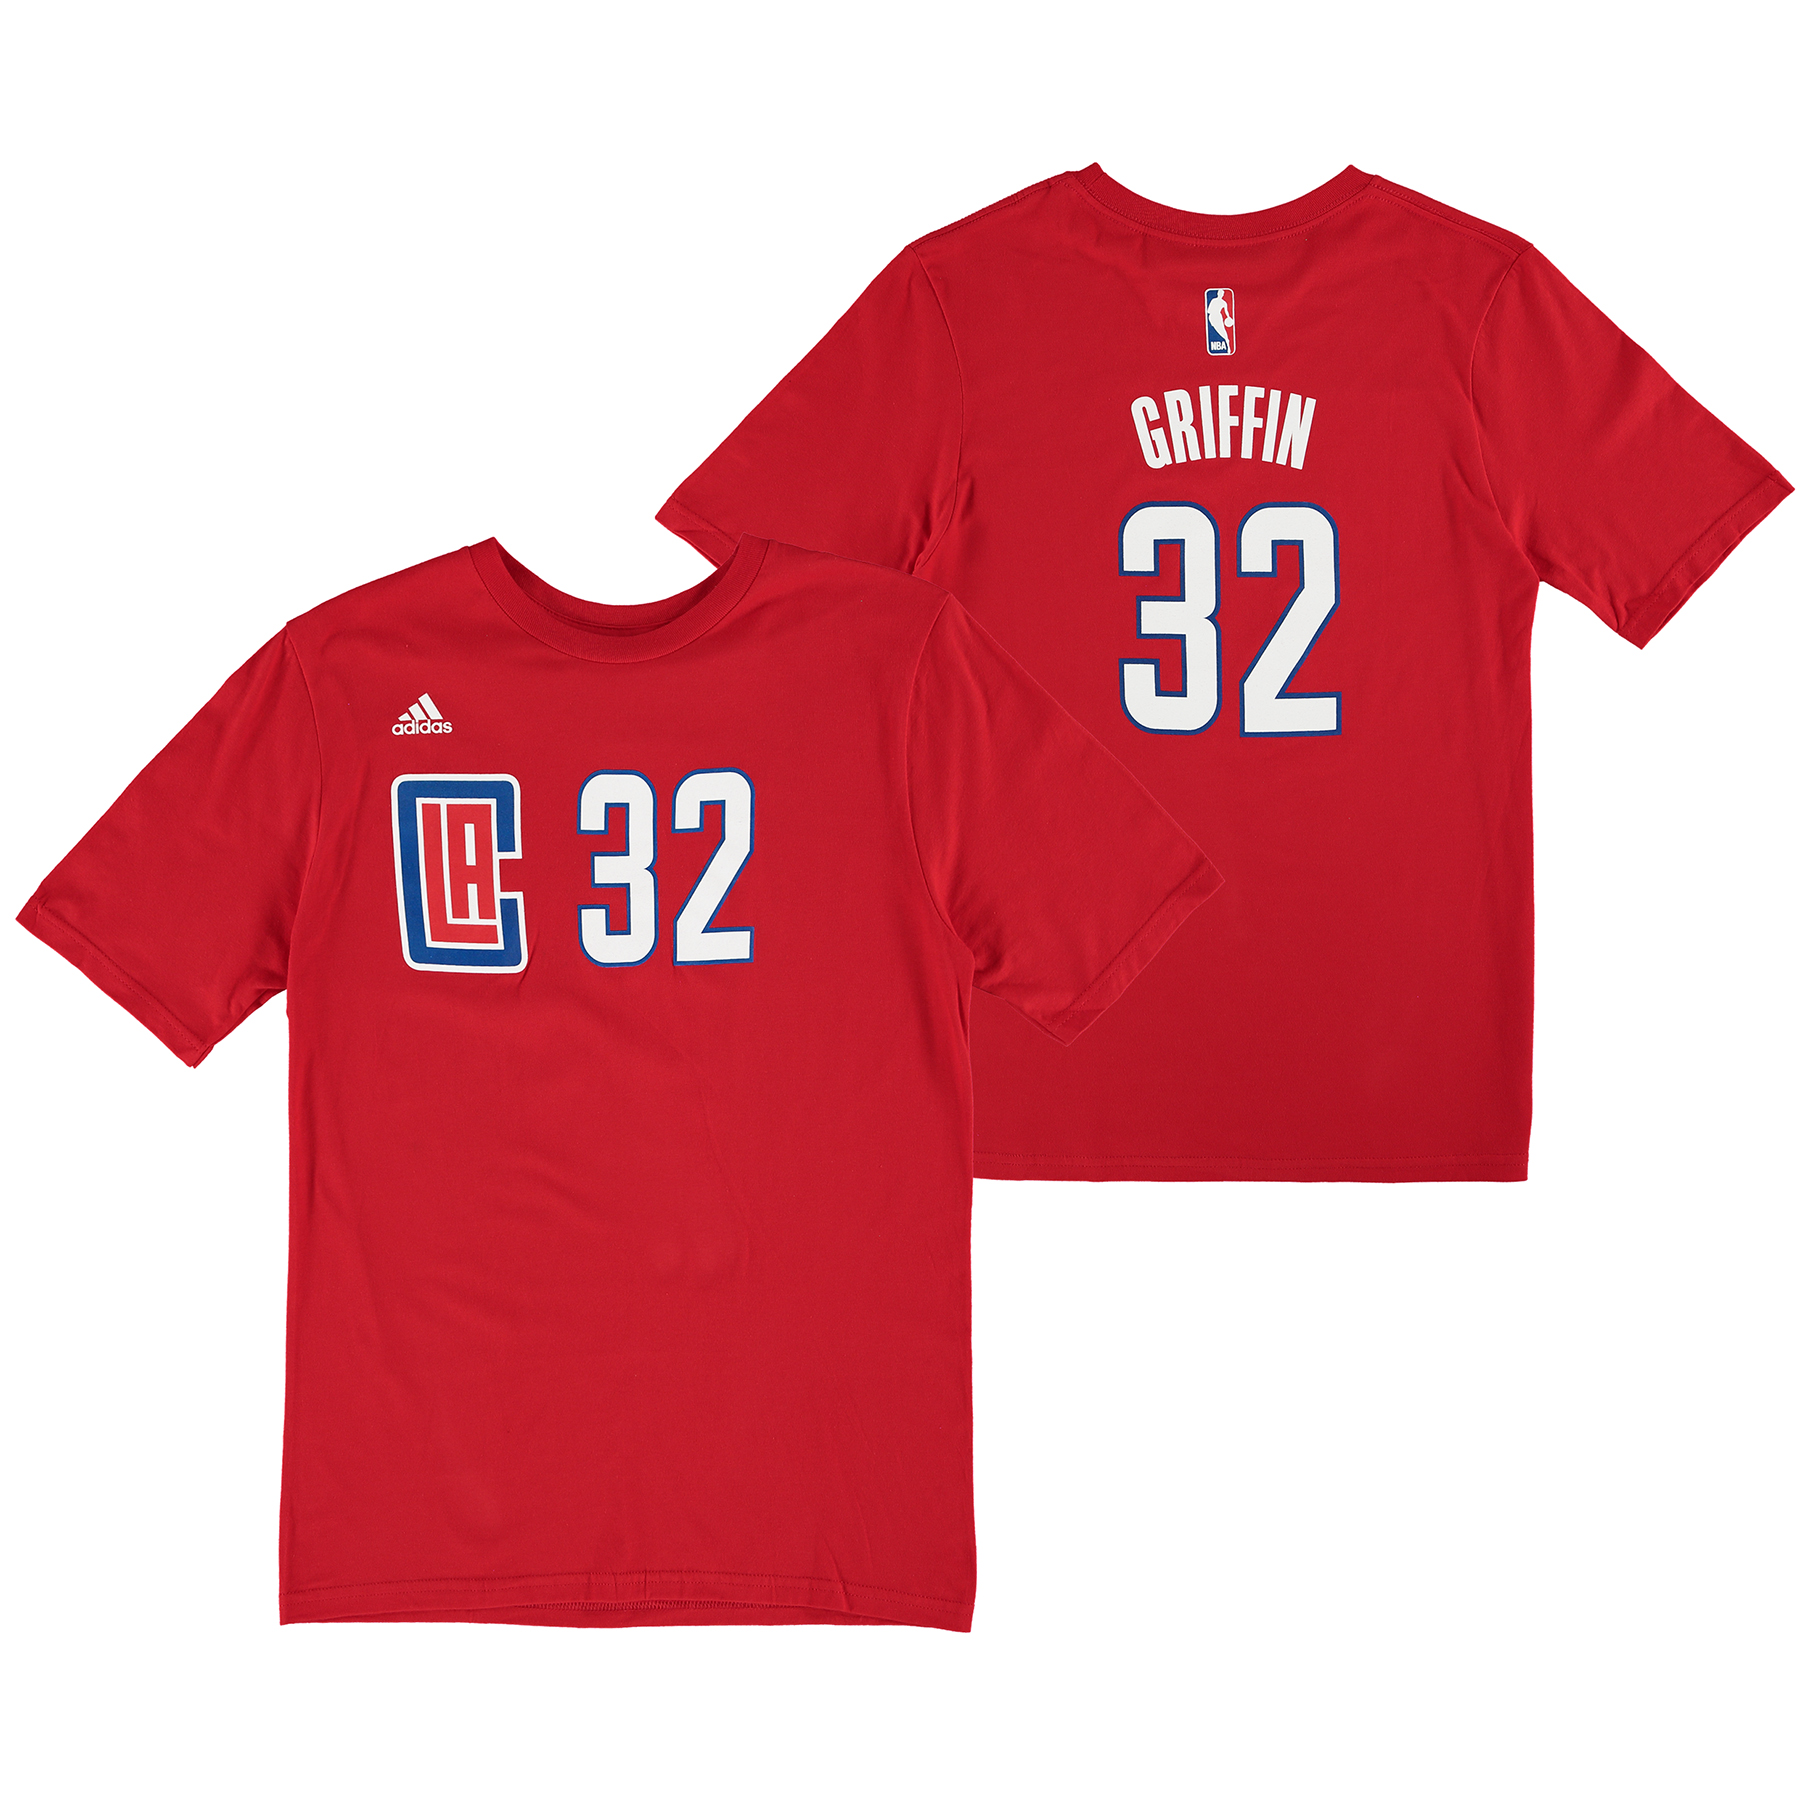 LA Clippers adidas Name & Number T-Shirt - Blake Griffin - Youth